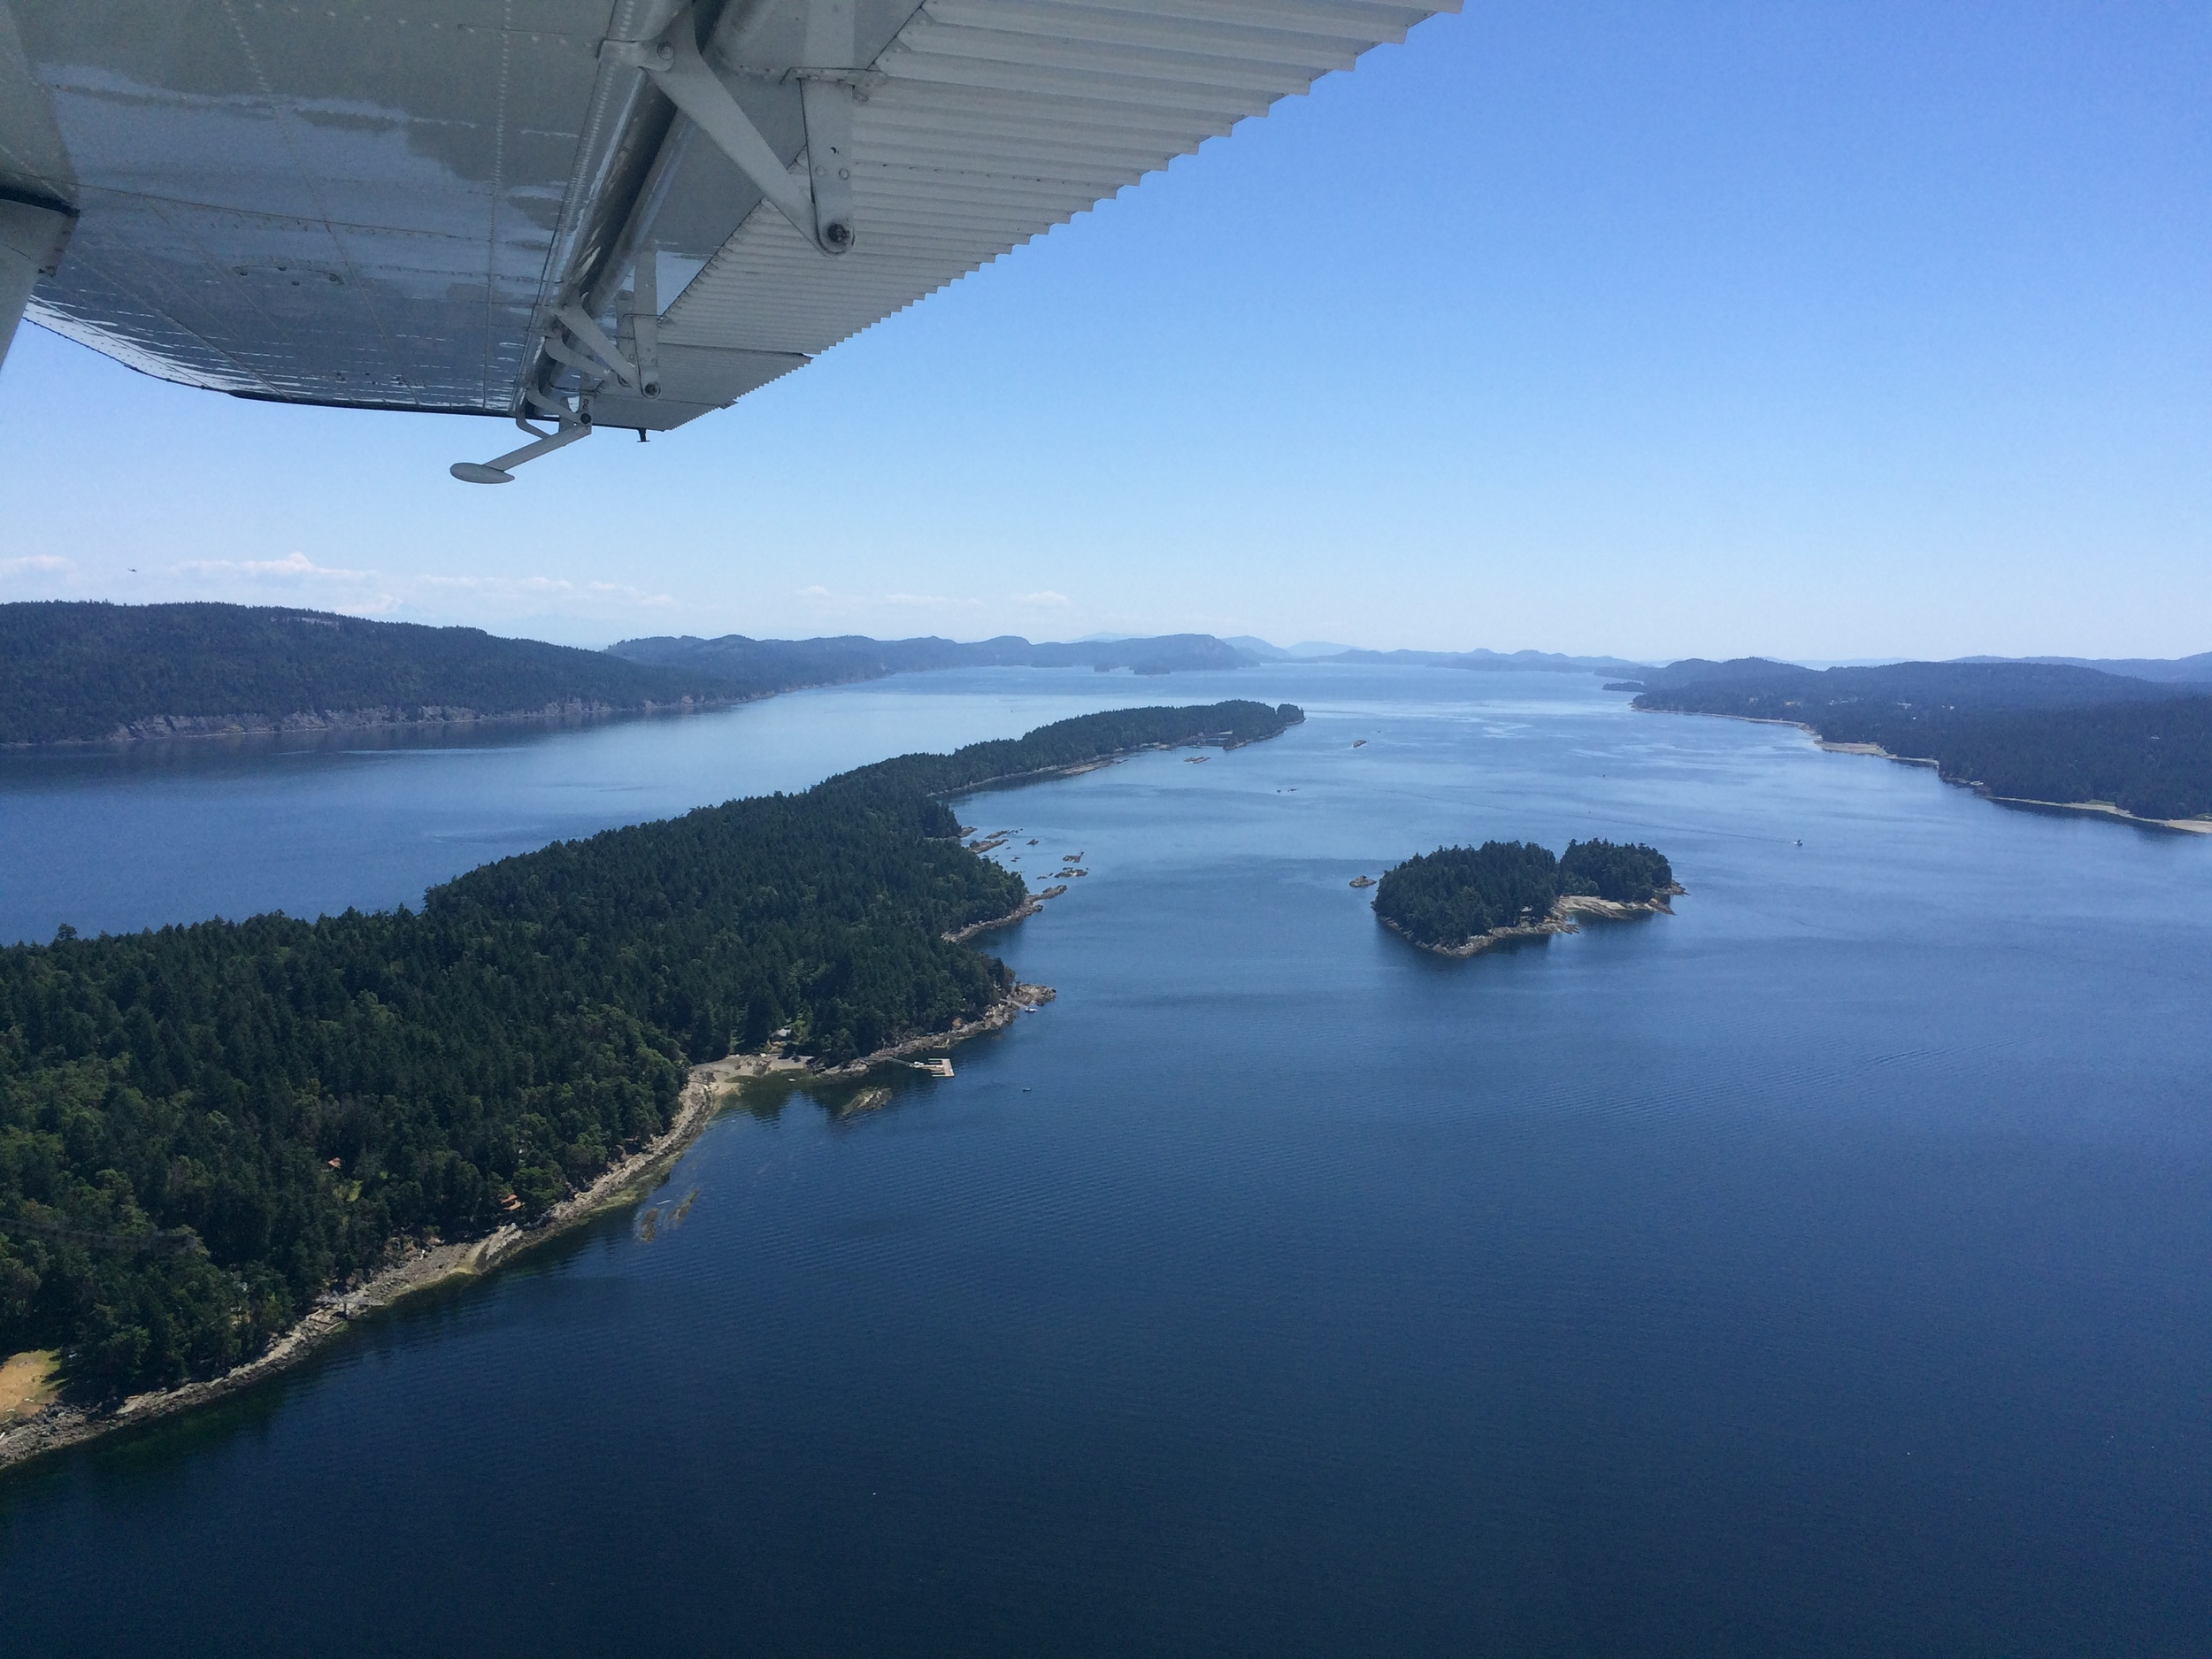 view from my seaplane window.